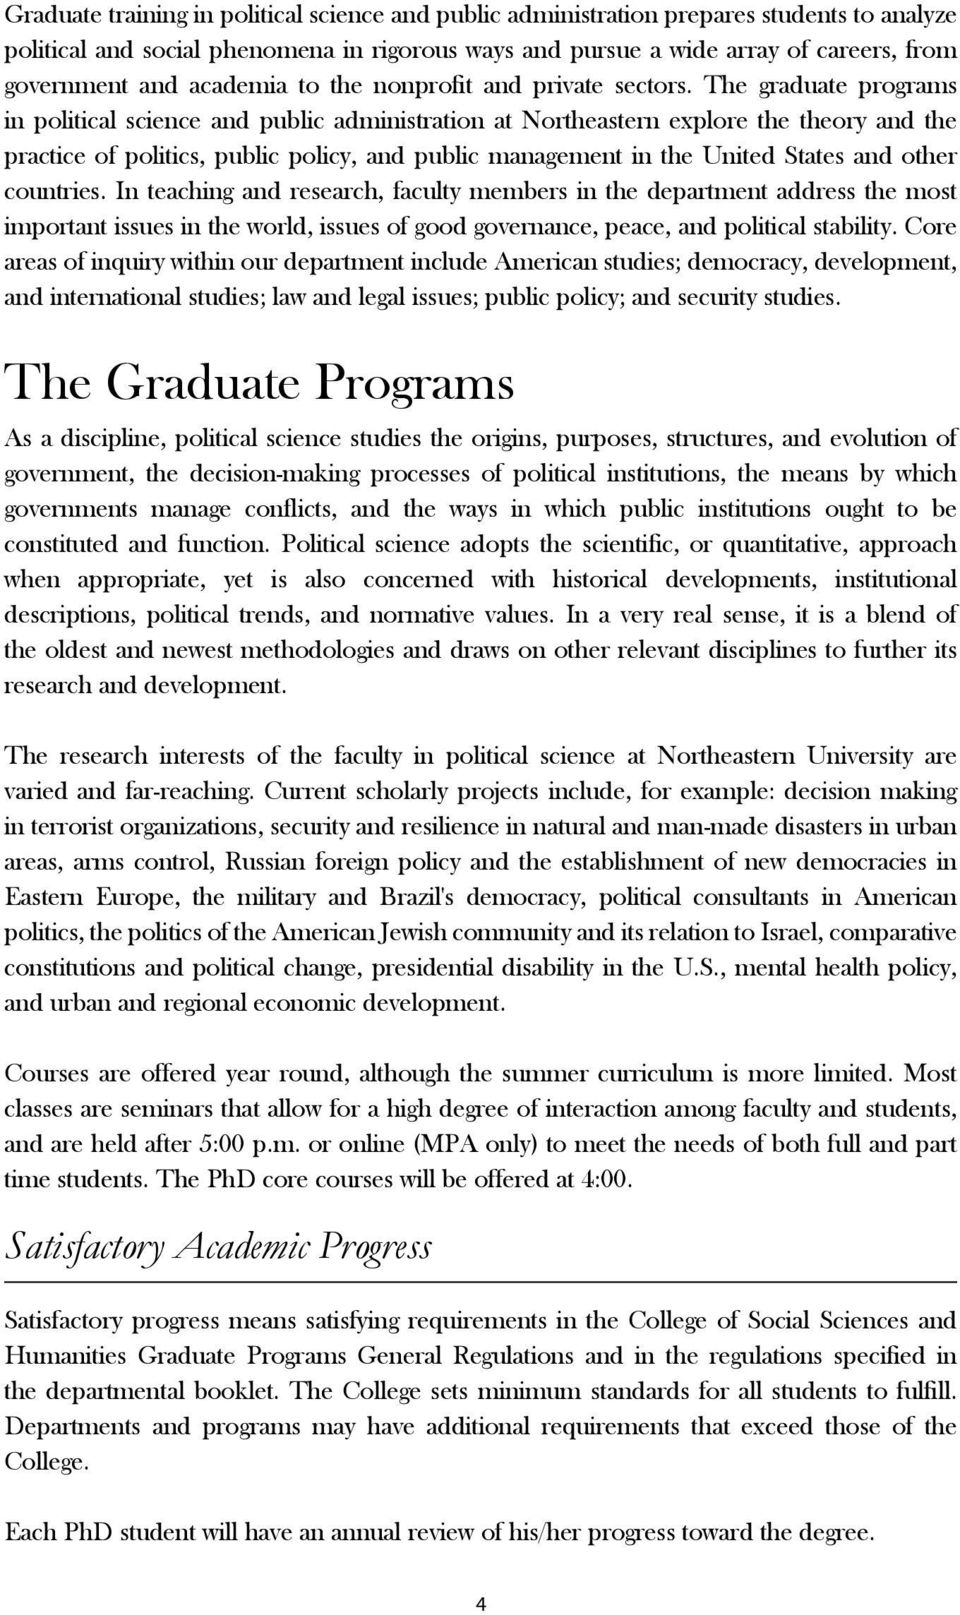 The graduate programs in political science and public administration at Northeastern explore the theory and the practice of politics, public policy, and public management in the United States and